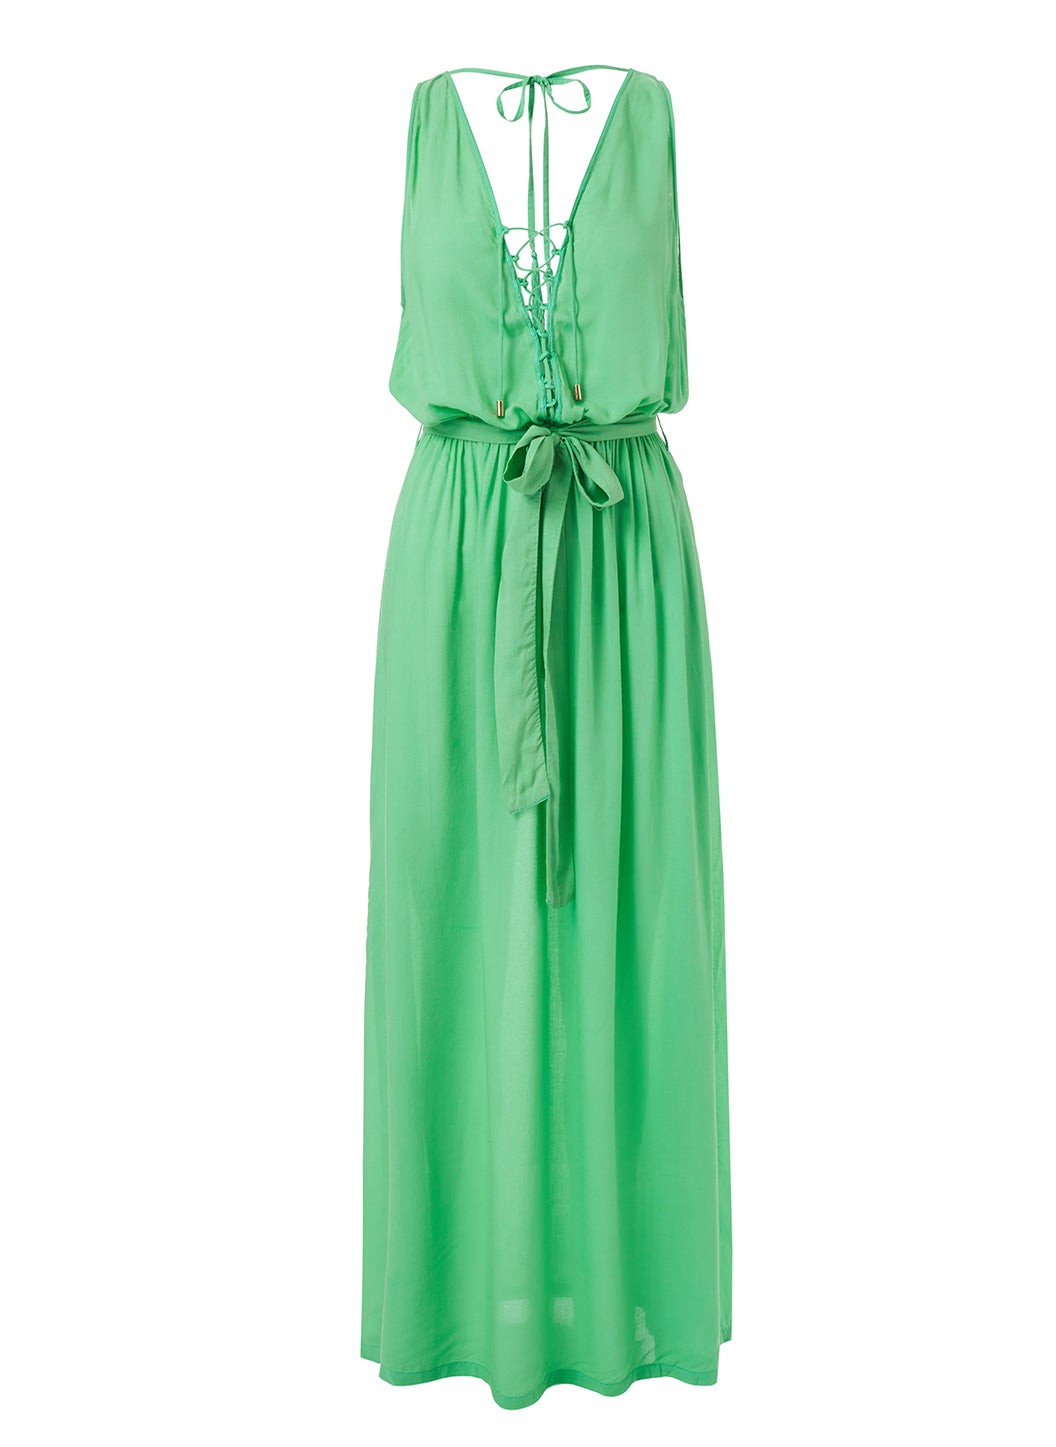 Jacquie Green Lace-Up Belted Maxi Dress - Melissa Odabash Dresses & Kaftans